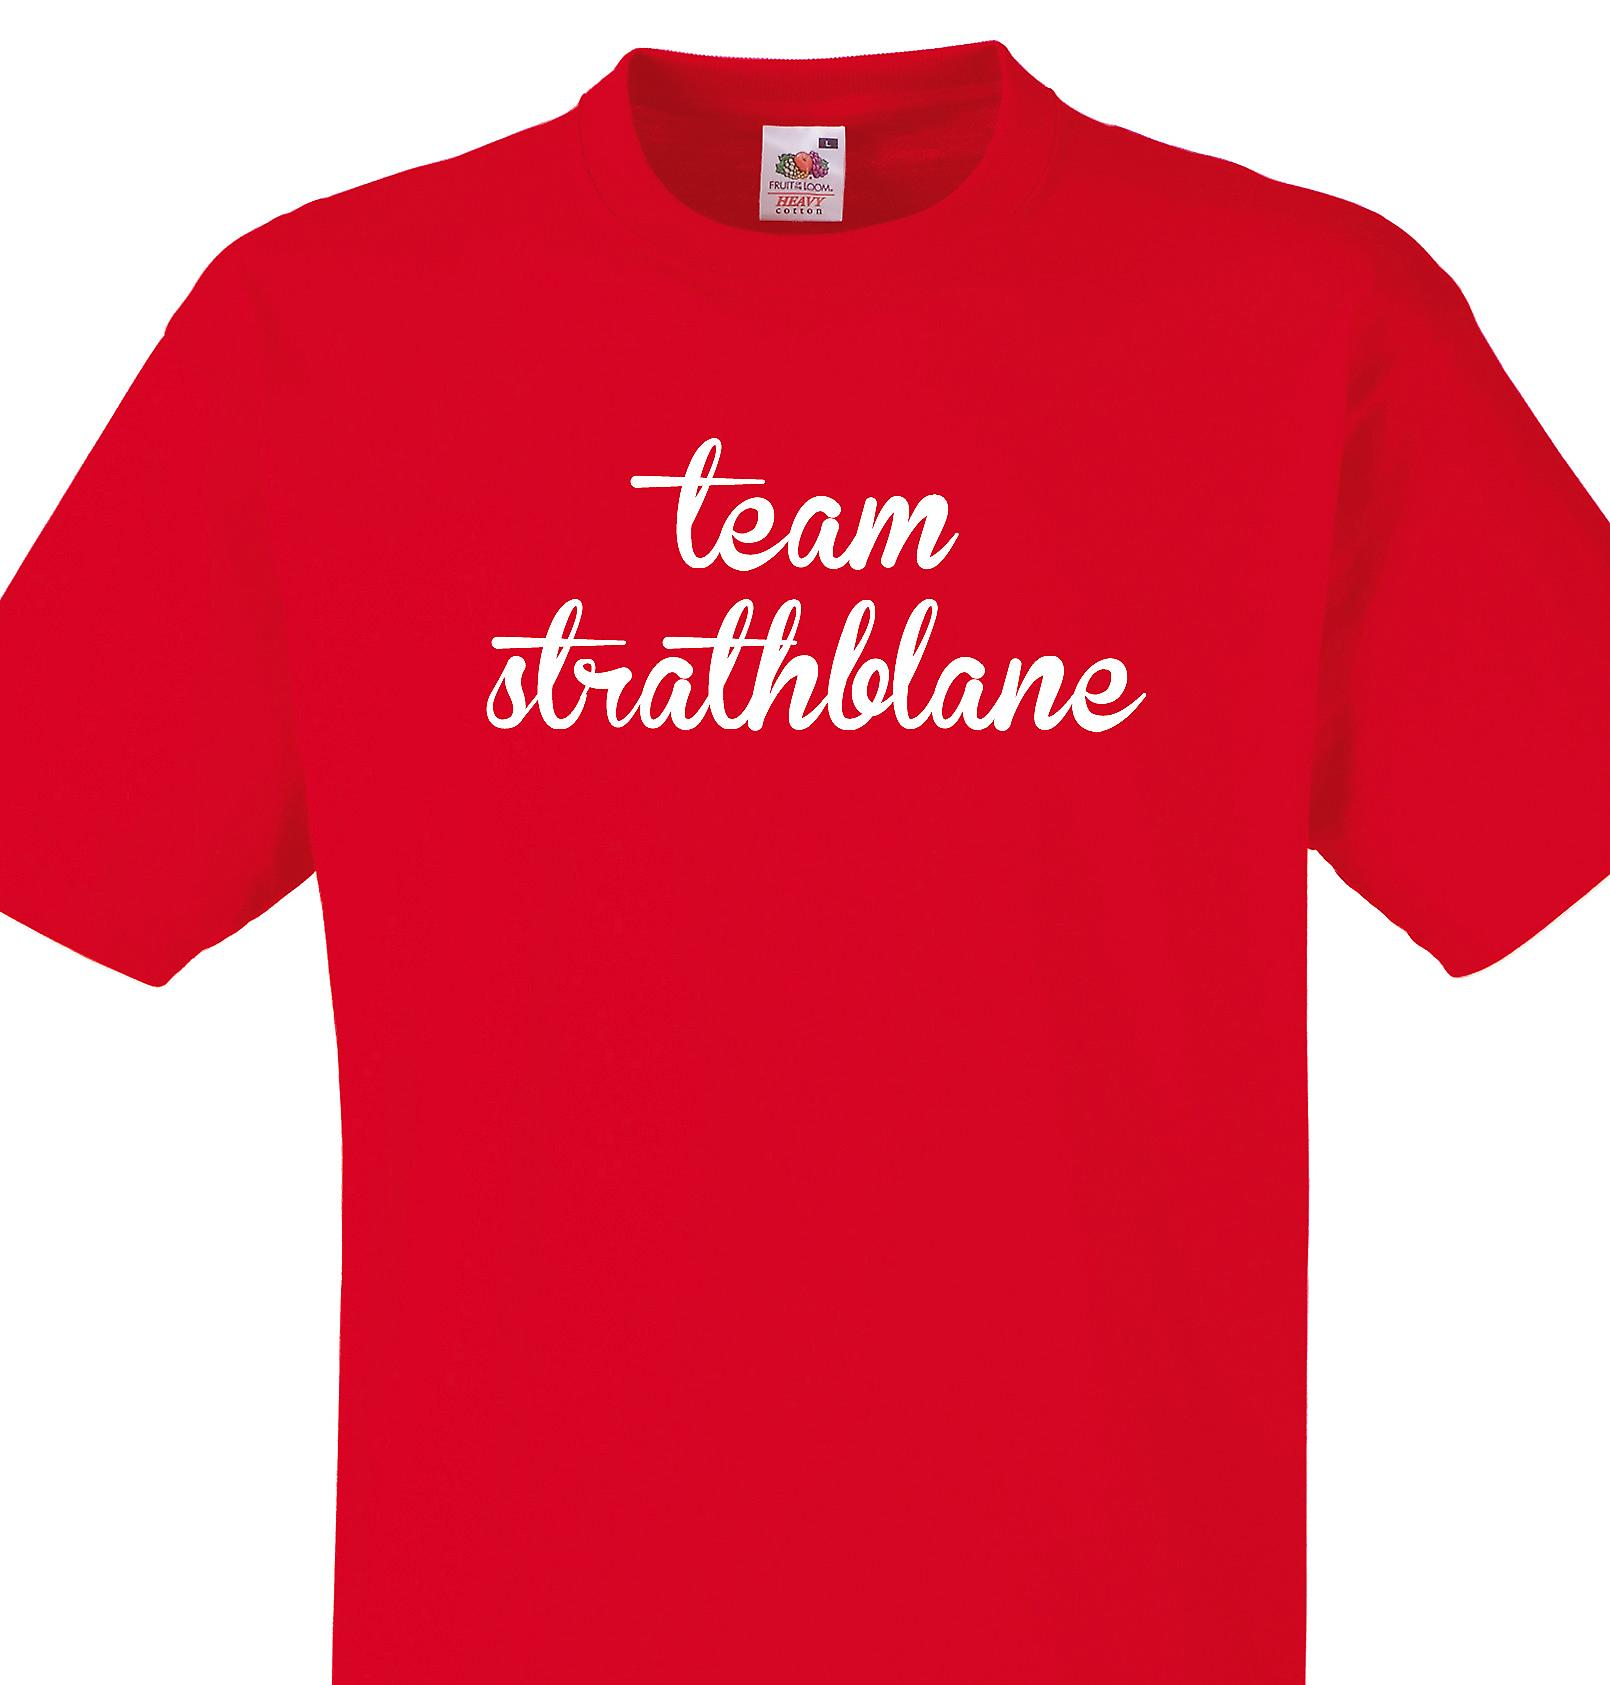 Team Strathblane Red T shirt